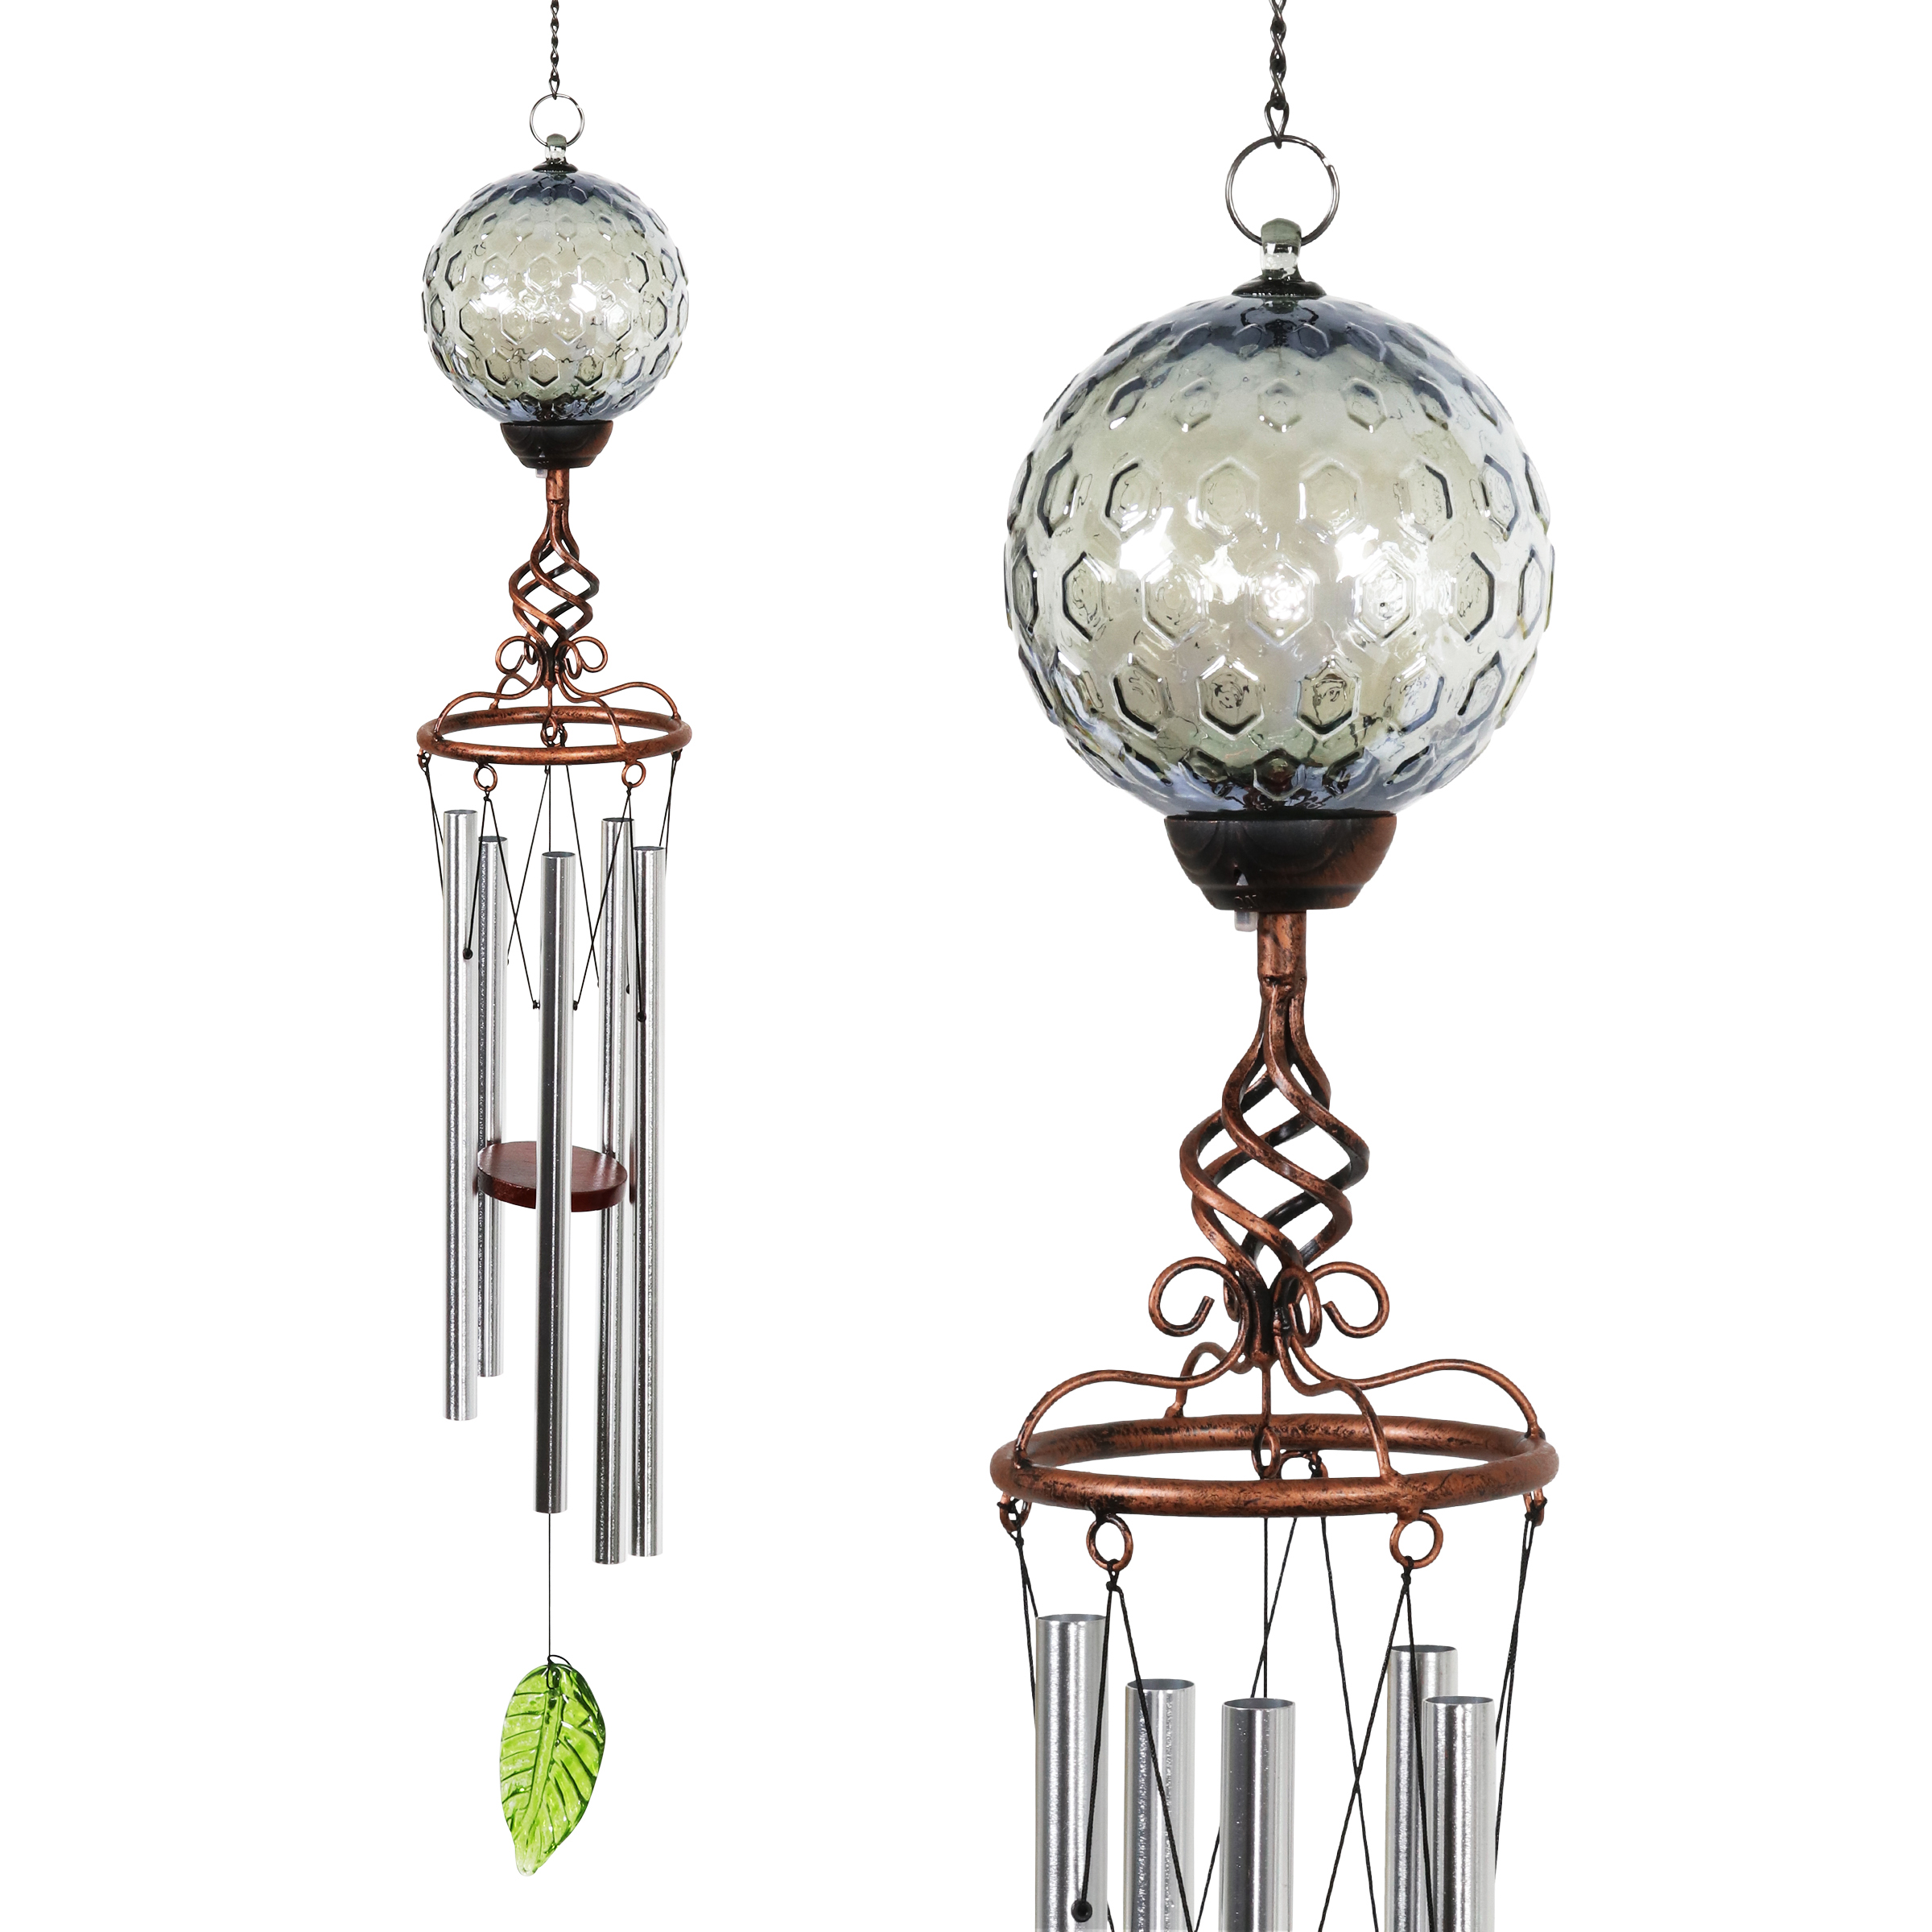 Solar Pearlized Honeycomb Glass Wind Chime